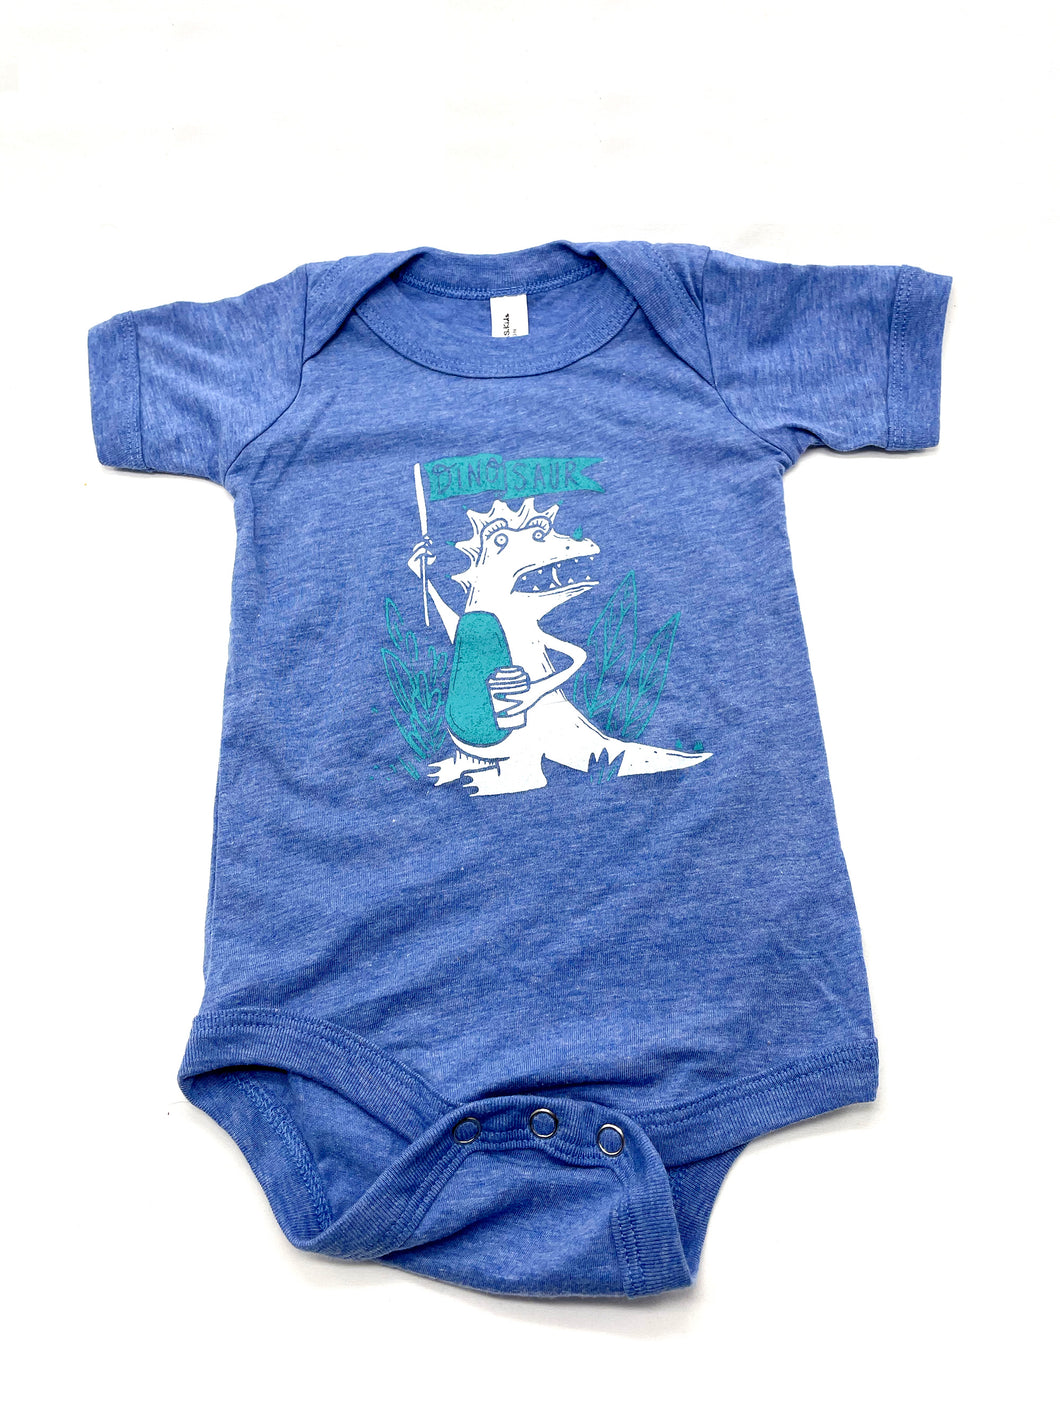 Heather blue, snap bottom baby onesie with a white dinosaur creature holding a coffee in one hand and a teal